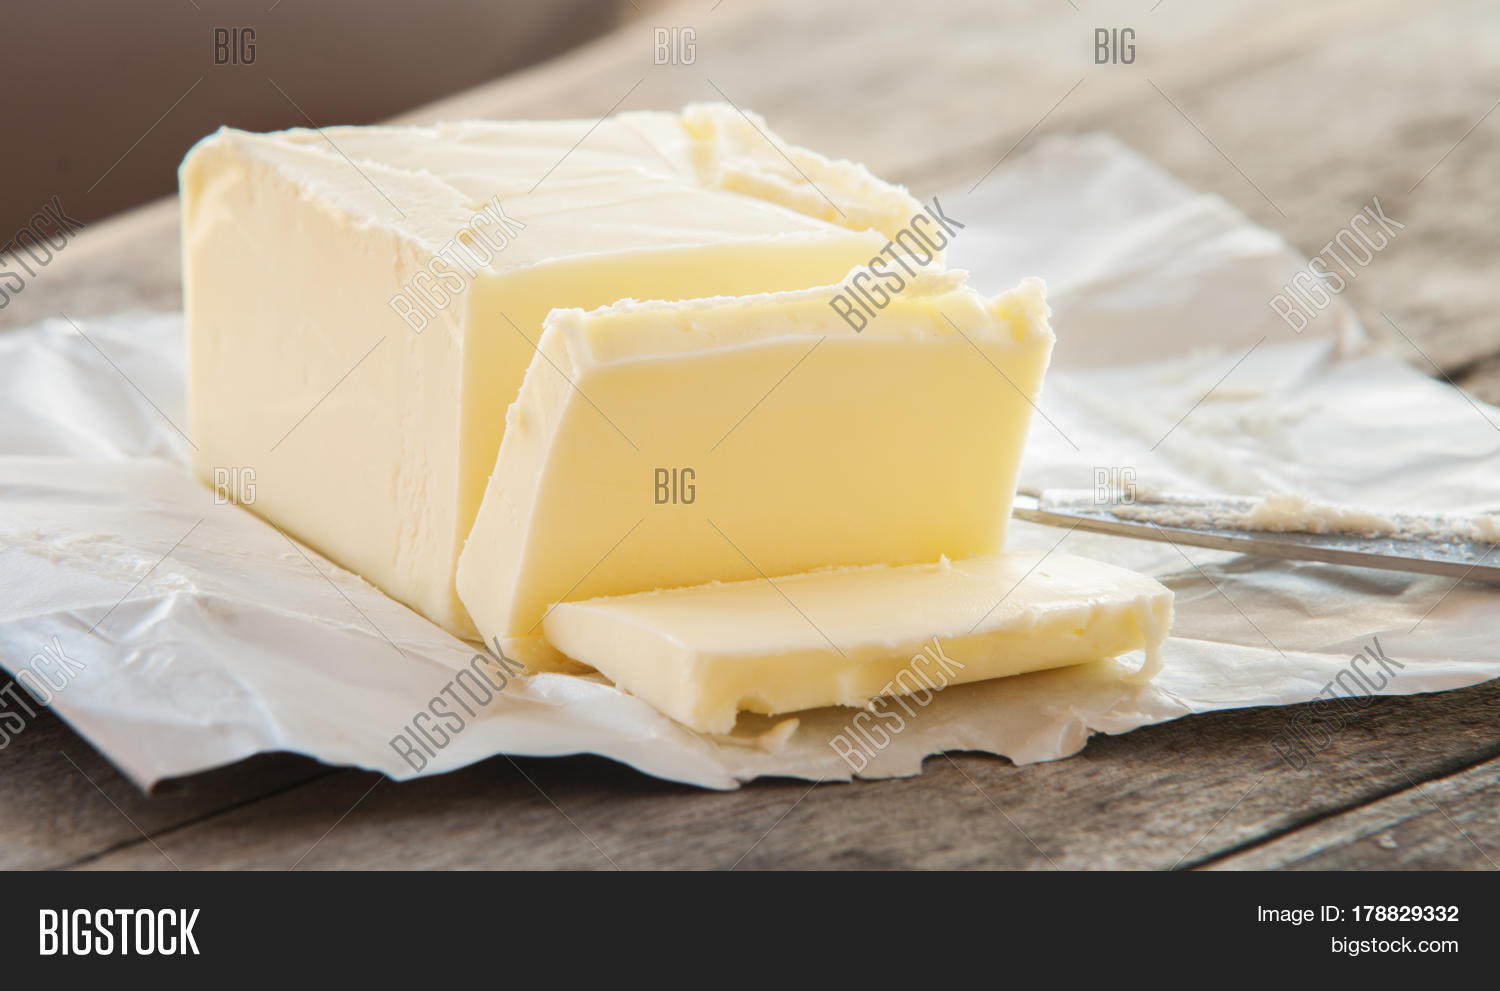 Stick Butter, Cut Image & Photo (Free Trial)